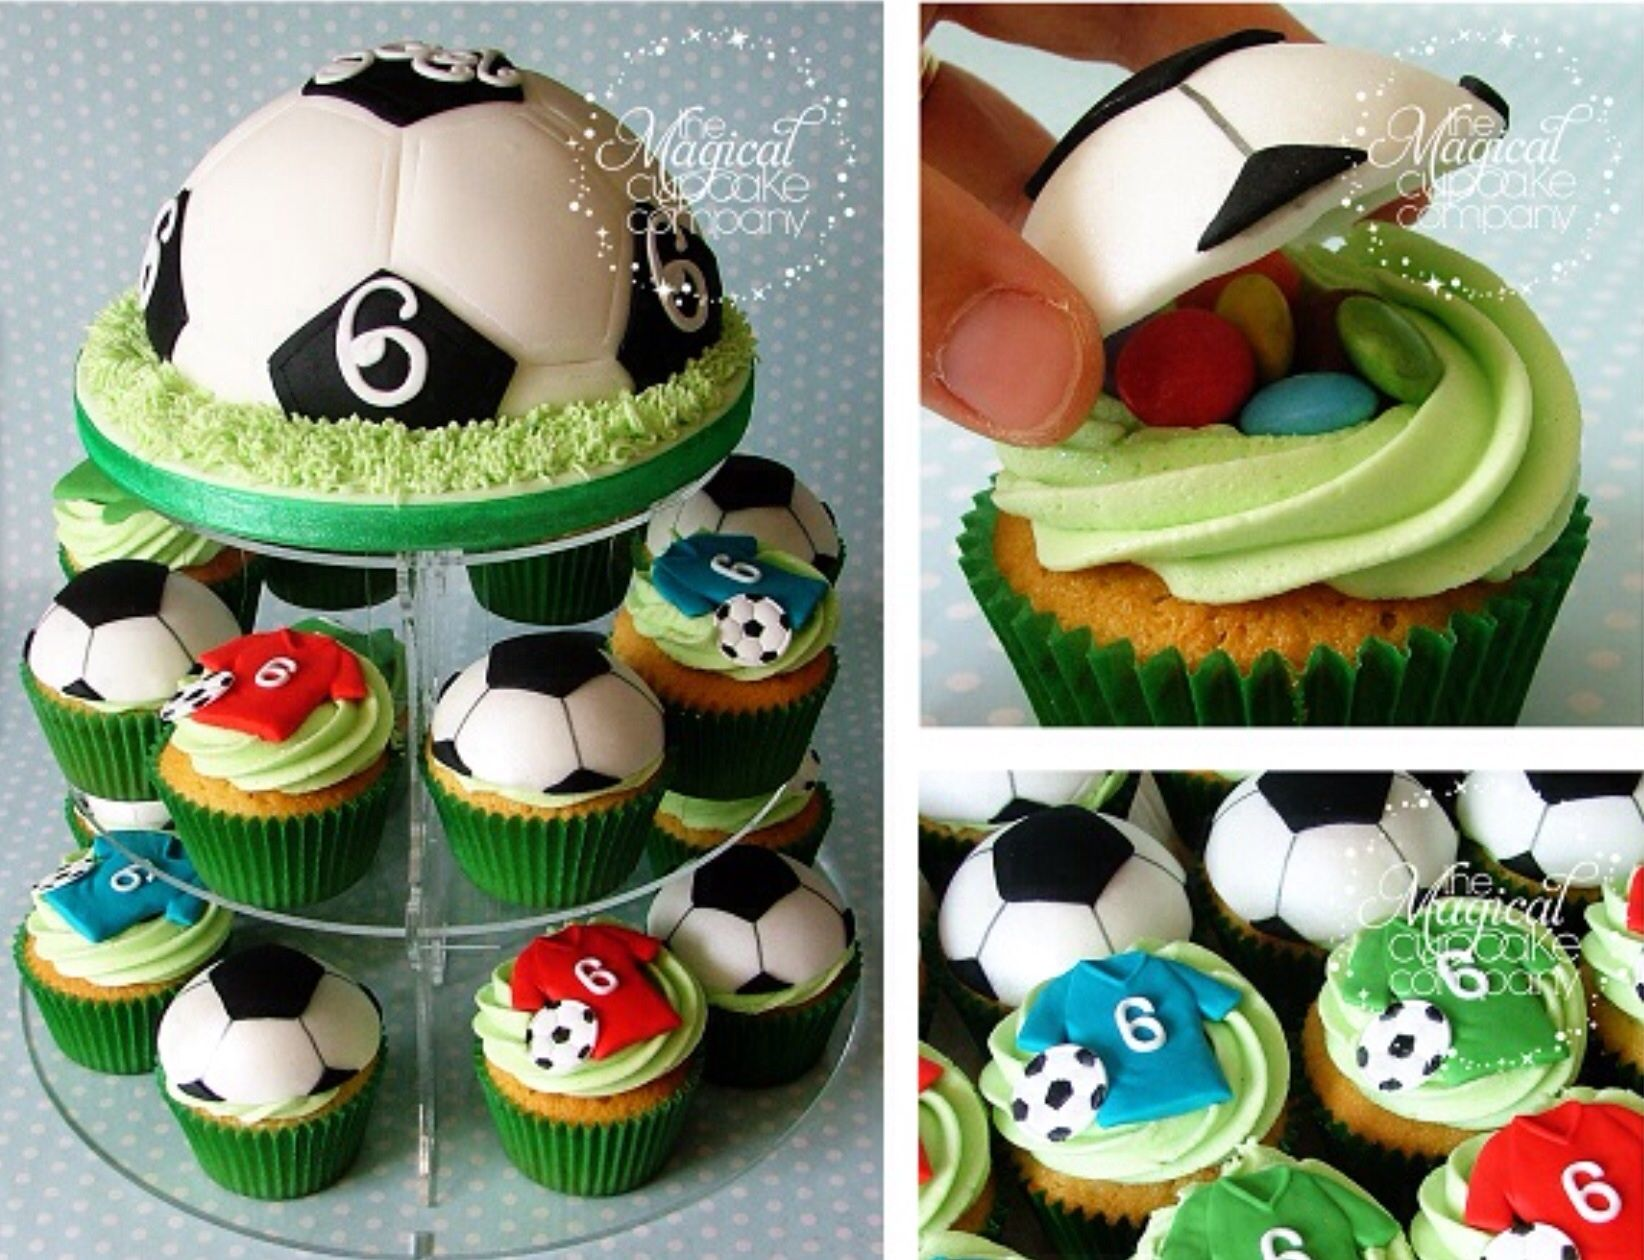 Score Big With These World Cup Themed Cakes And Cupcakes Soccer Cake Cupcake Cakes Themed Cakes